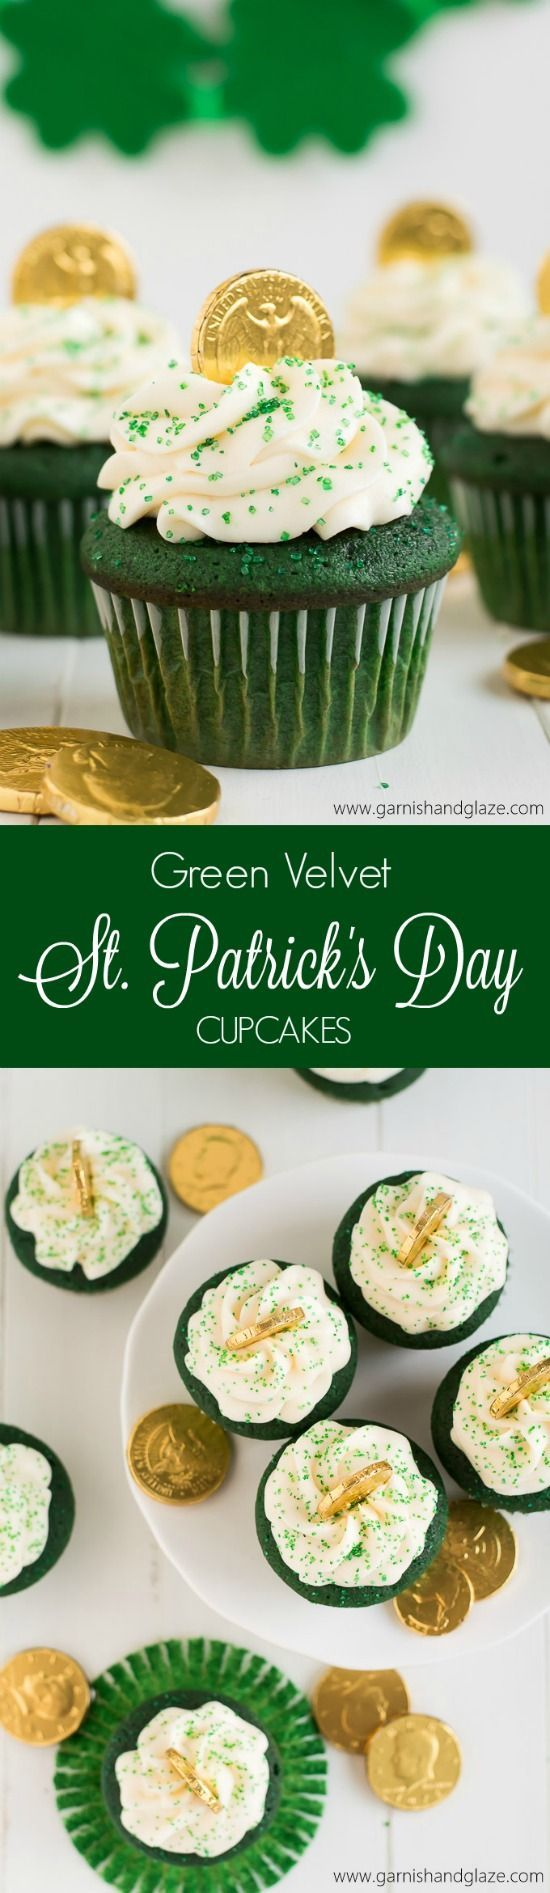 Get in the St. Patrick's Day Spirit with these yummy Green Velvet St. Patrick's Day Cupcakes topped with Cream Cheese Frosting! Recipe via Garnish and Glaze #easystpatricksdaydesserts #stpatricksday #stpatricksdayparty #stpatricksdaypartyfood #lucky #luckygreen #luckytreats #shamrocks #clovers #rainbowtreats #leprechantreats